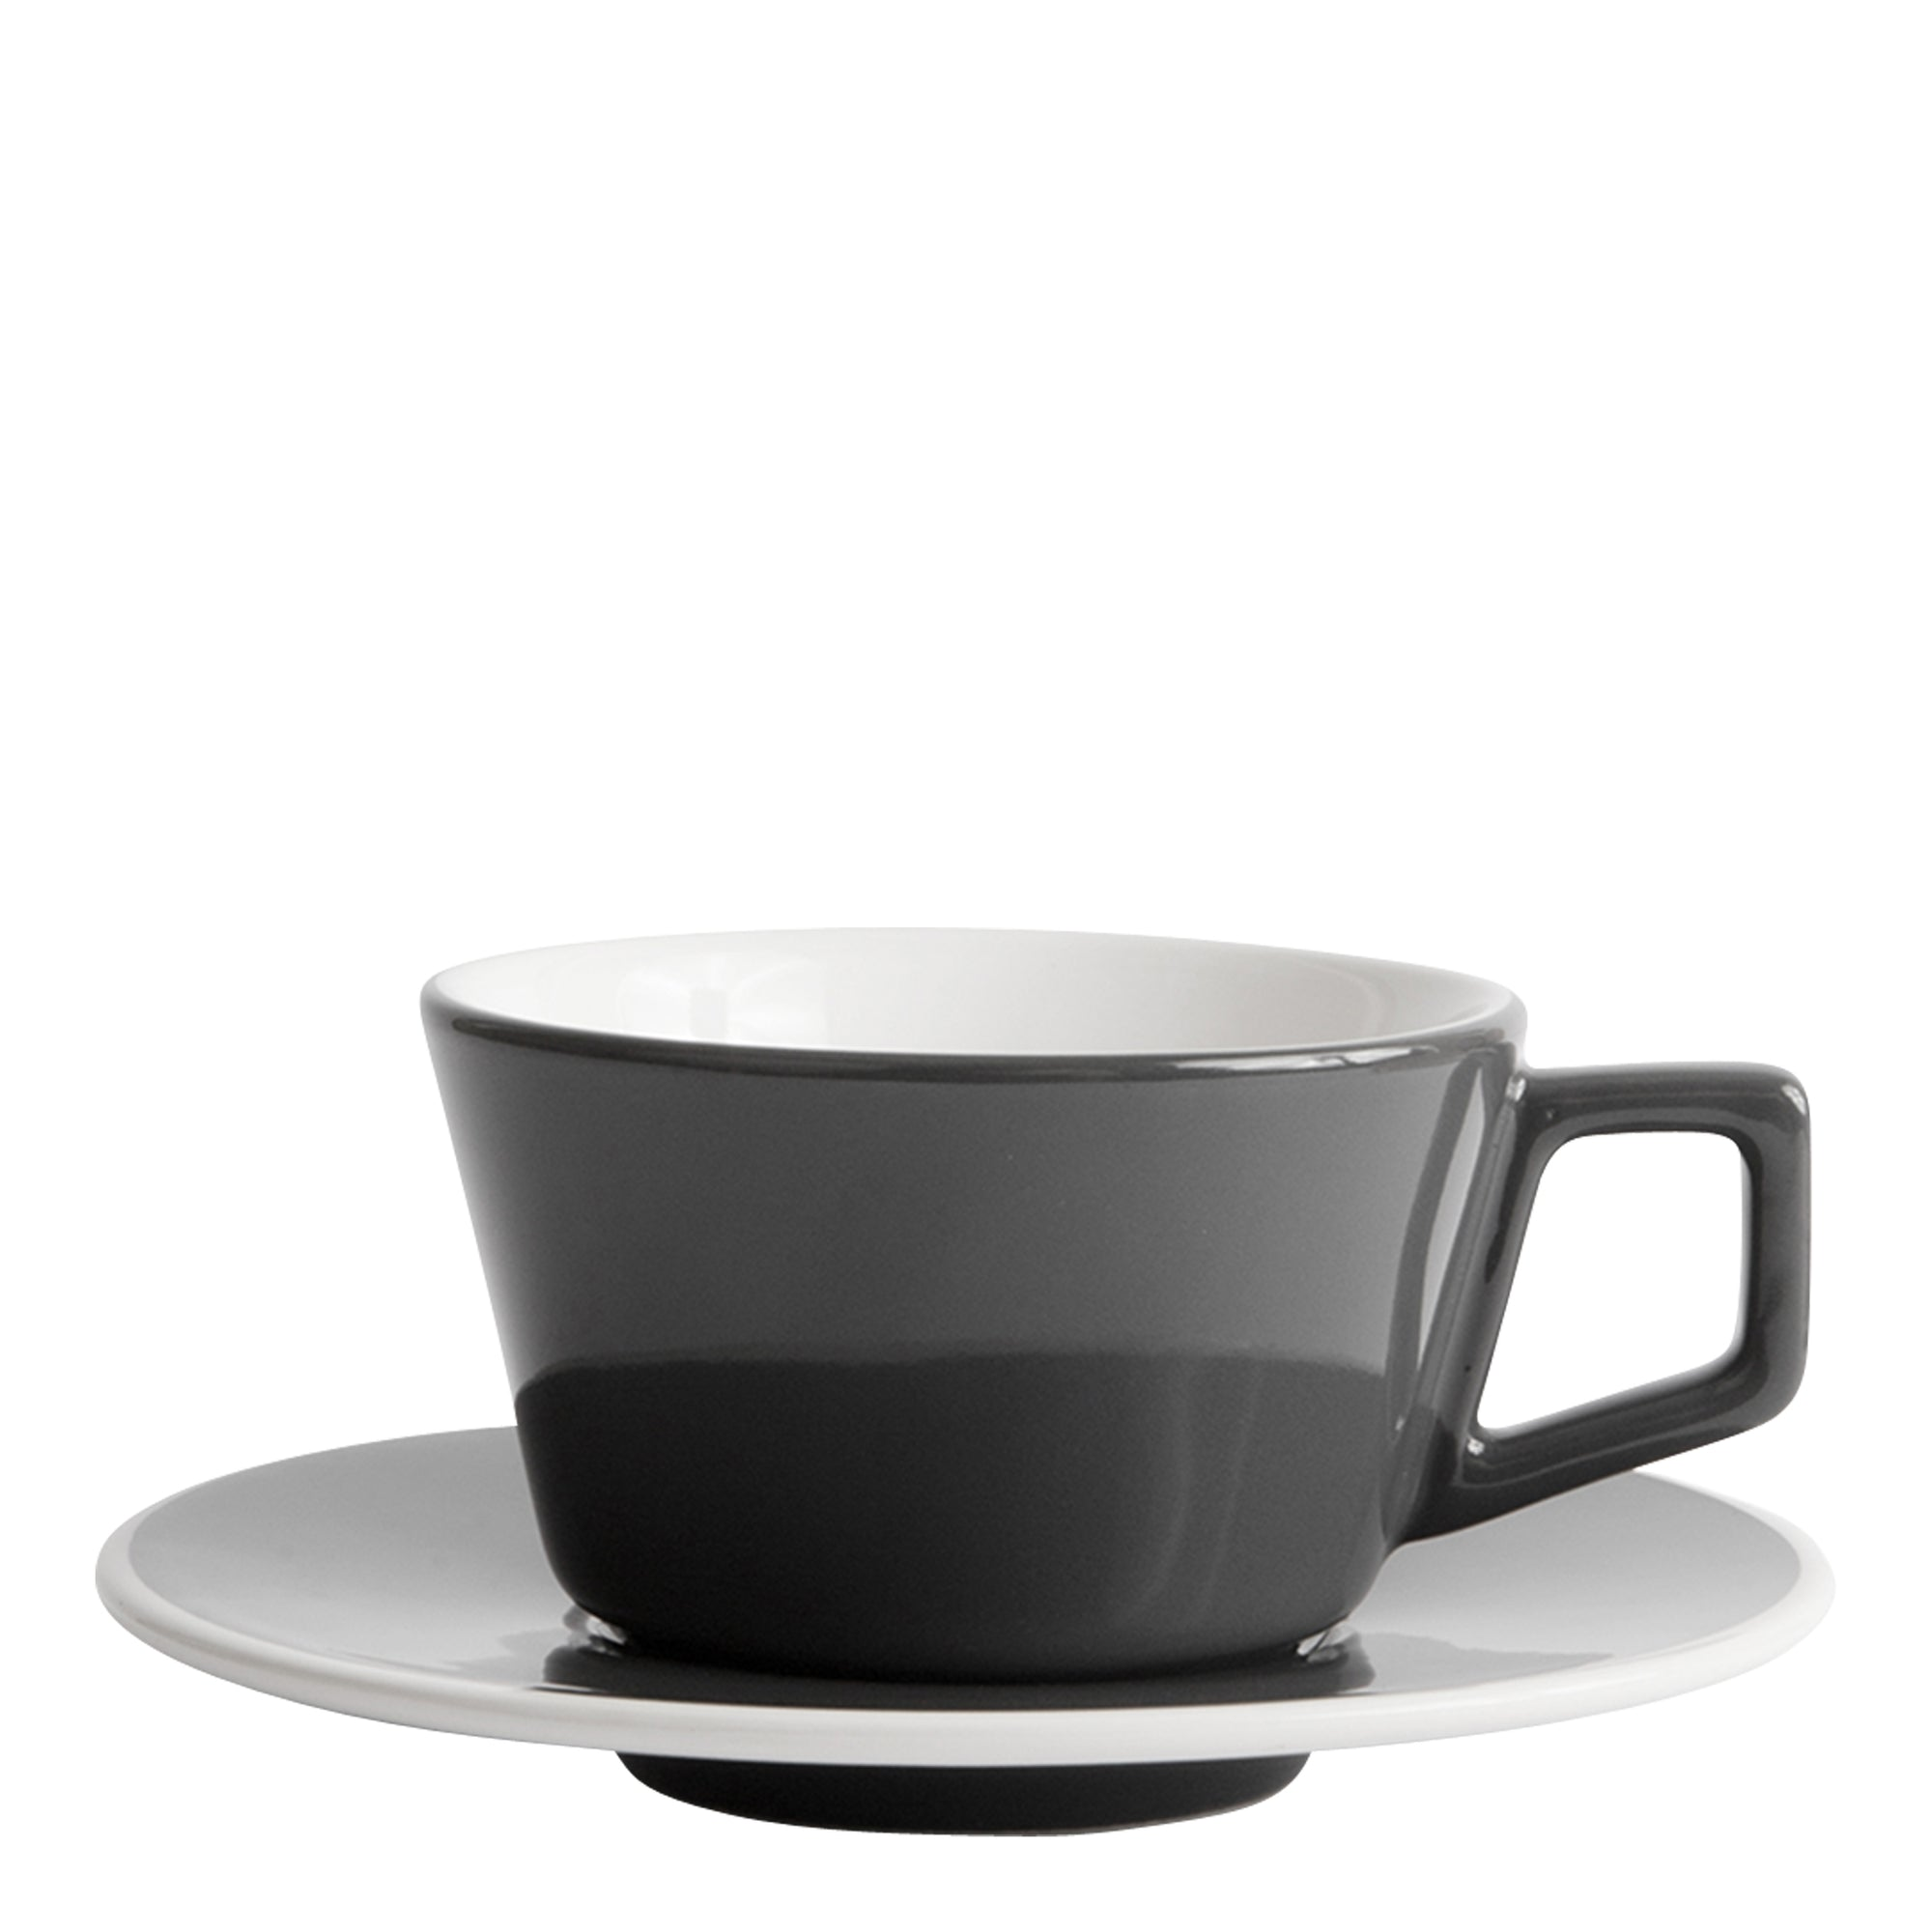 Created Co Angled Cappuccino 6oz/ 18cl - gray - Espresso Gear